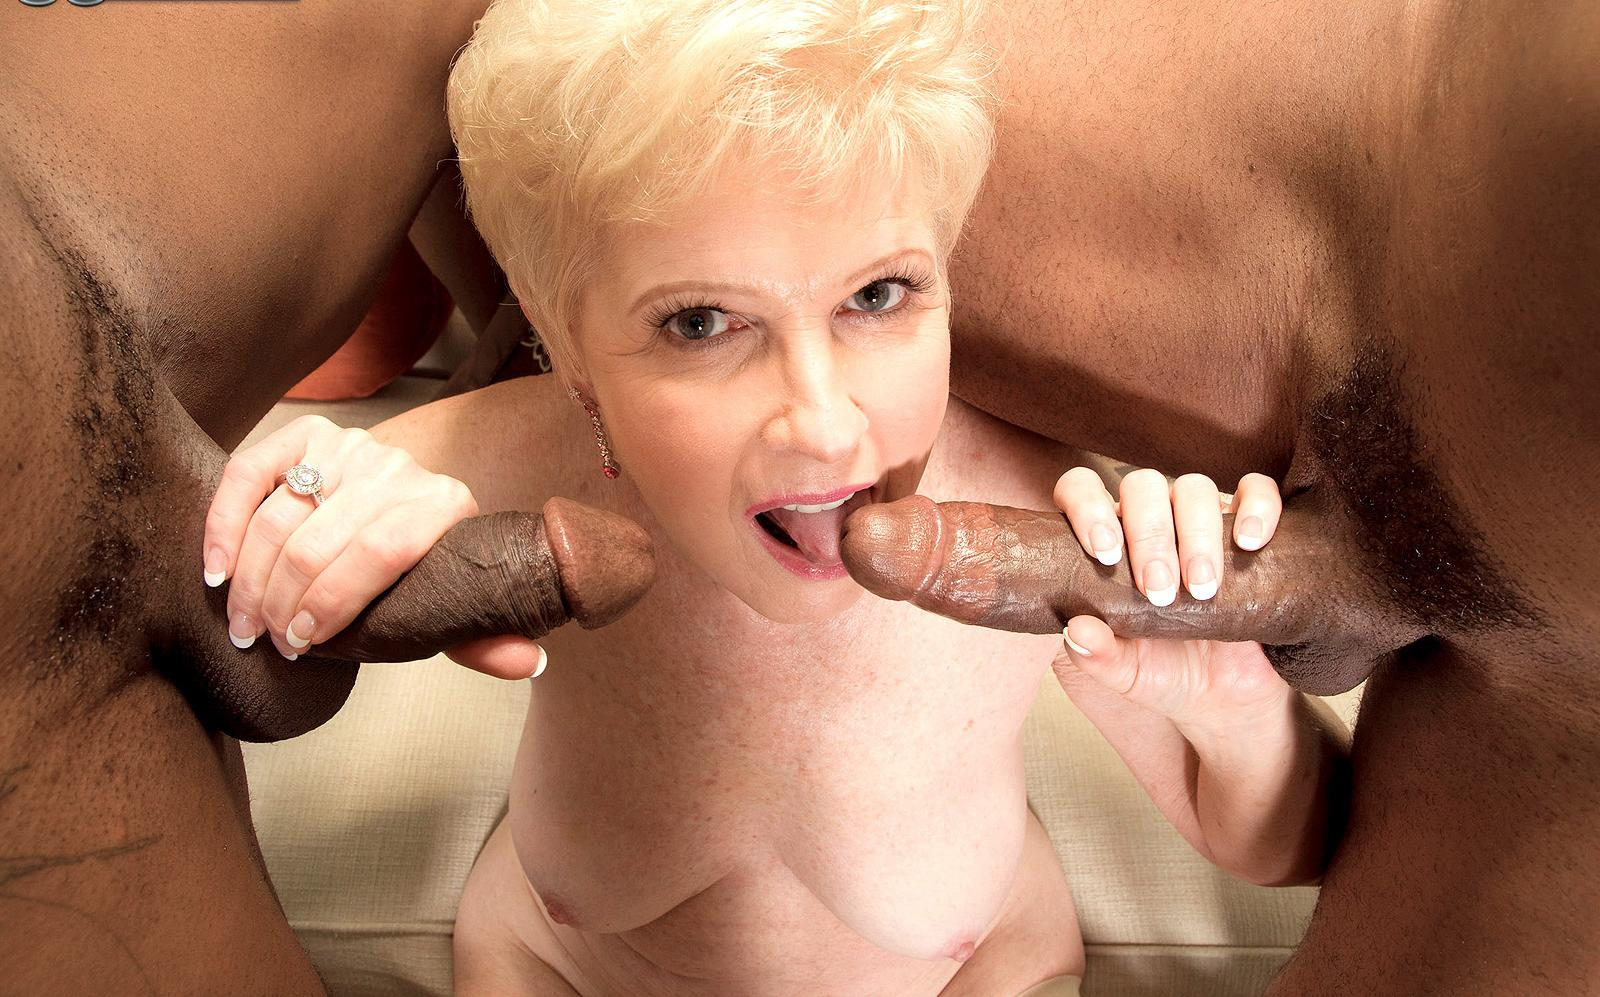 granny regulary has daydreams loves to do it with big black dicks